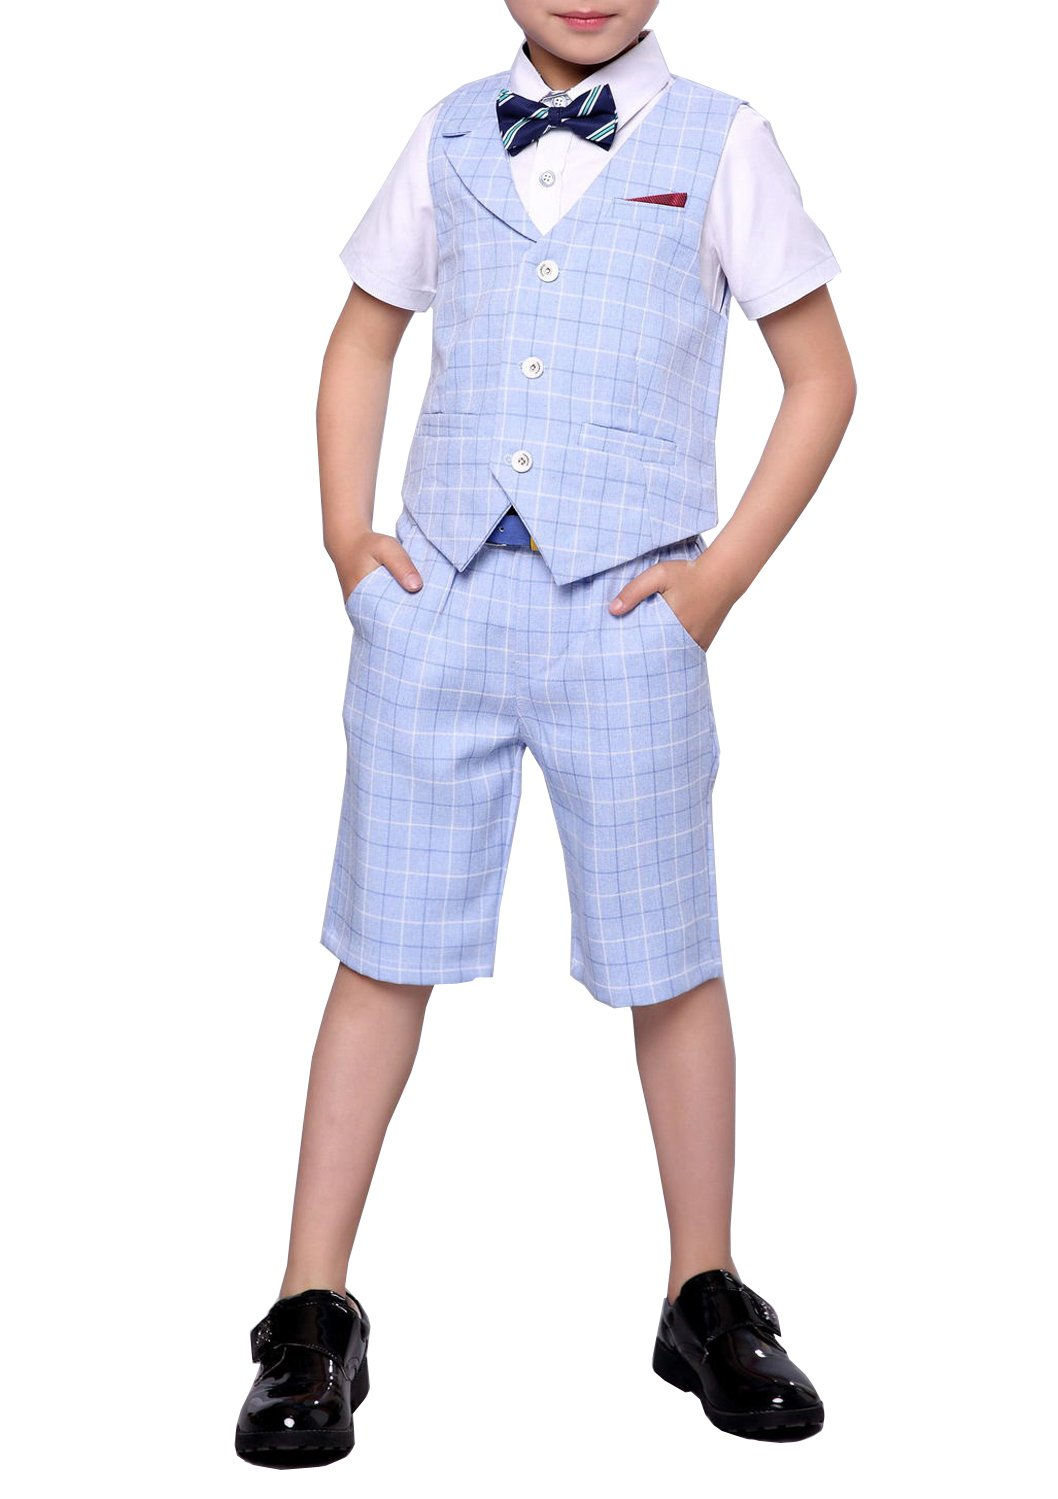 Boys Summer Suit Set 3 Pieces Shirt Vest and Shorts Set Blue Gray and Pink (12, Blue)